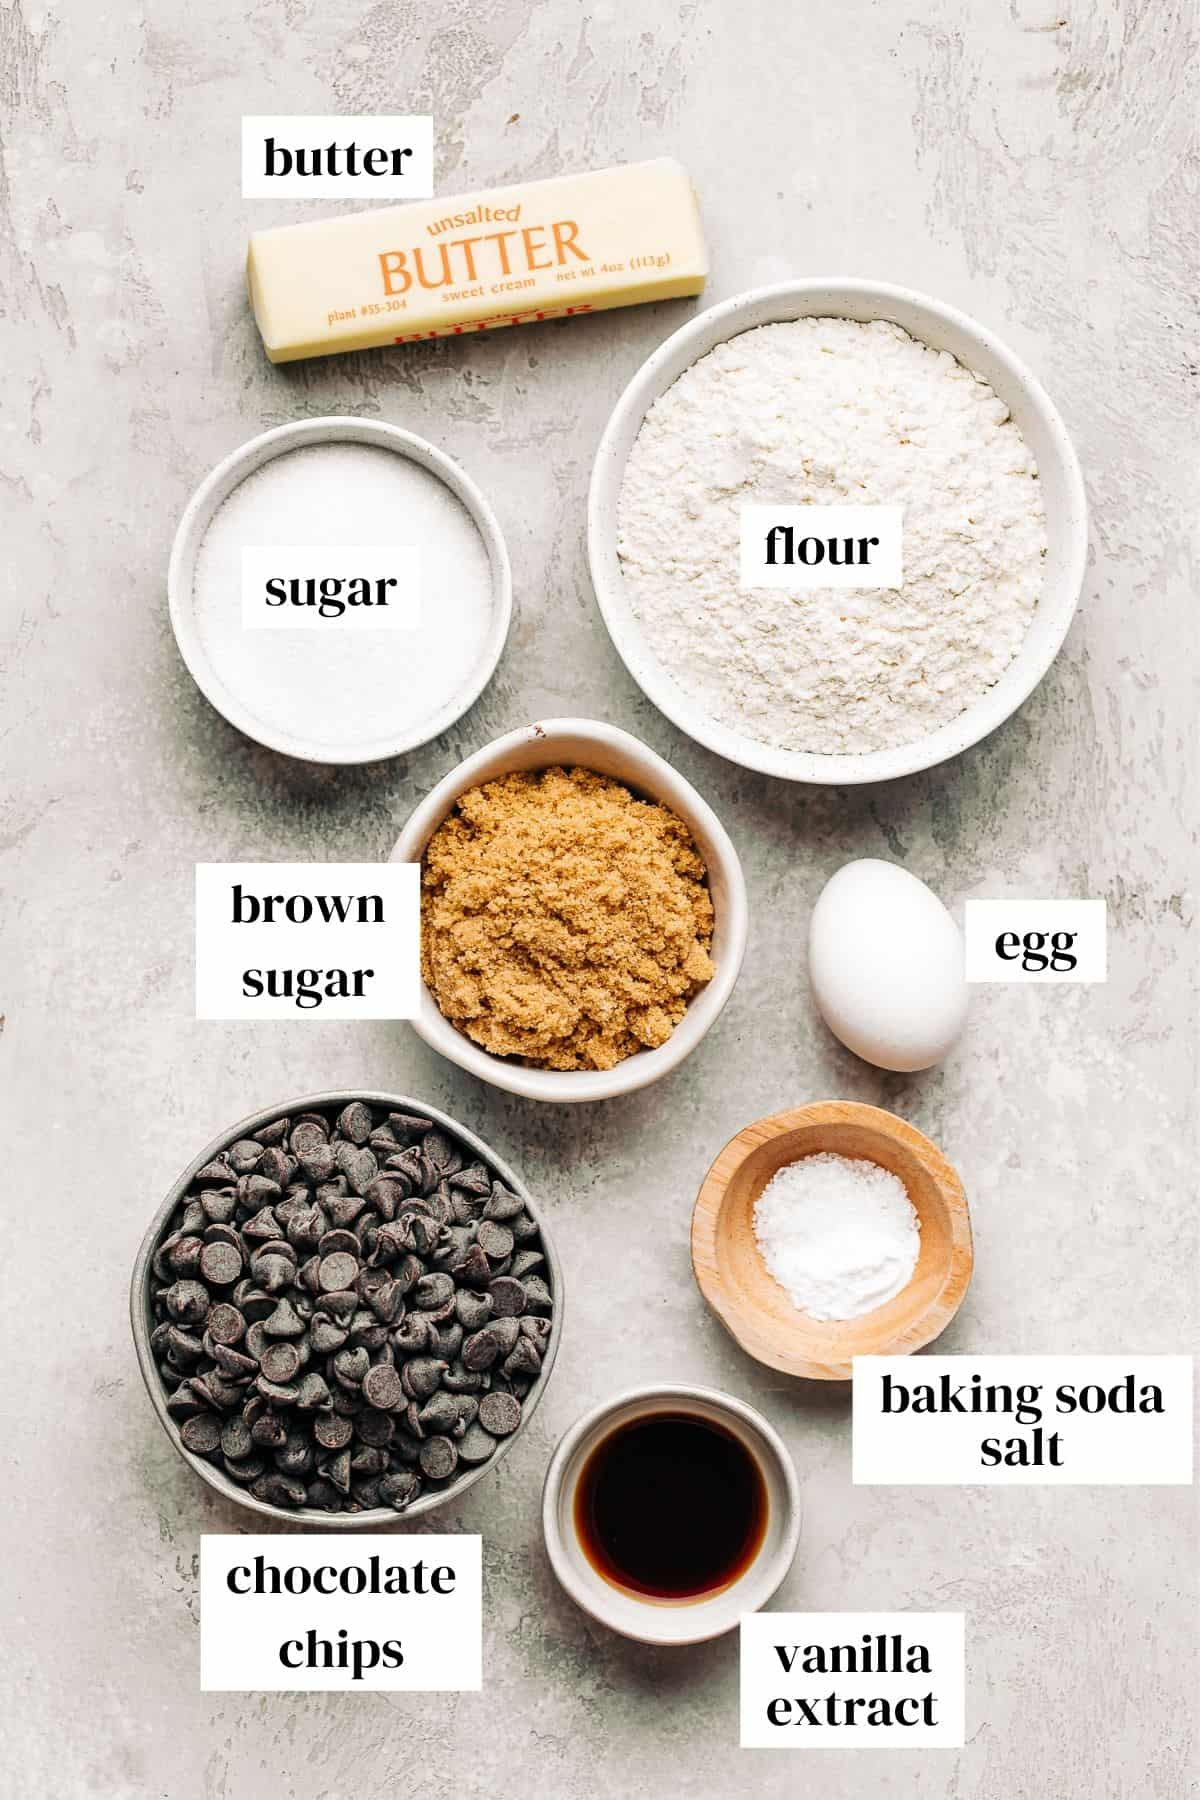 butter, flour, sugar, brown sugar, egg, chocolate chips, baking soda, salt, and vanilla extract in small bowls.